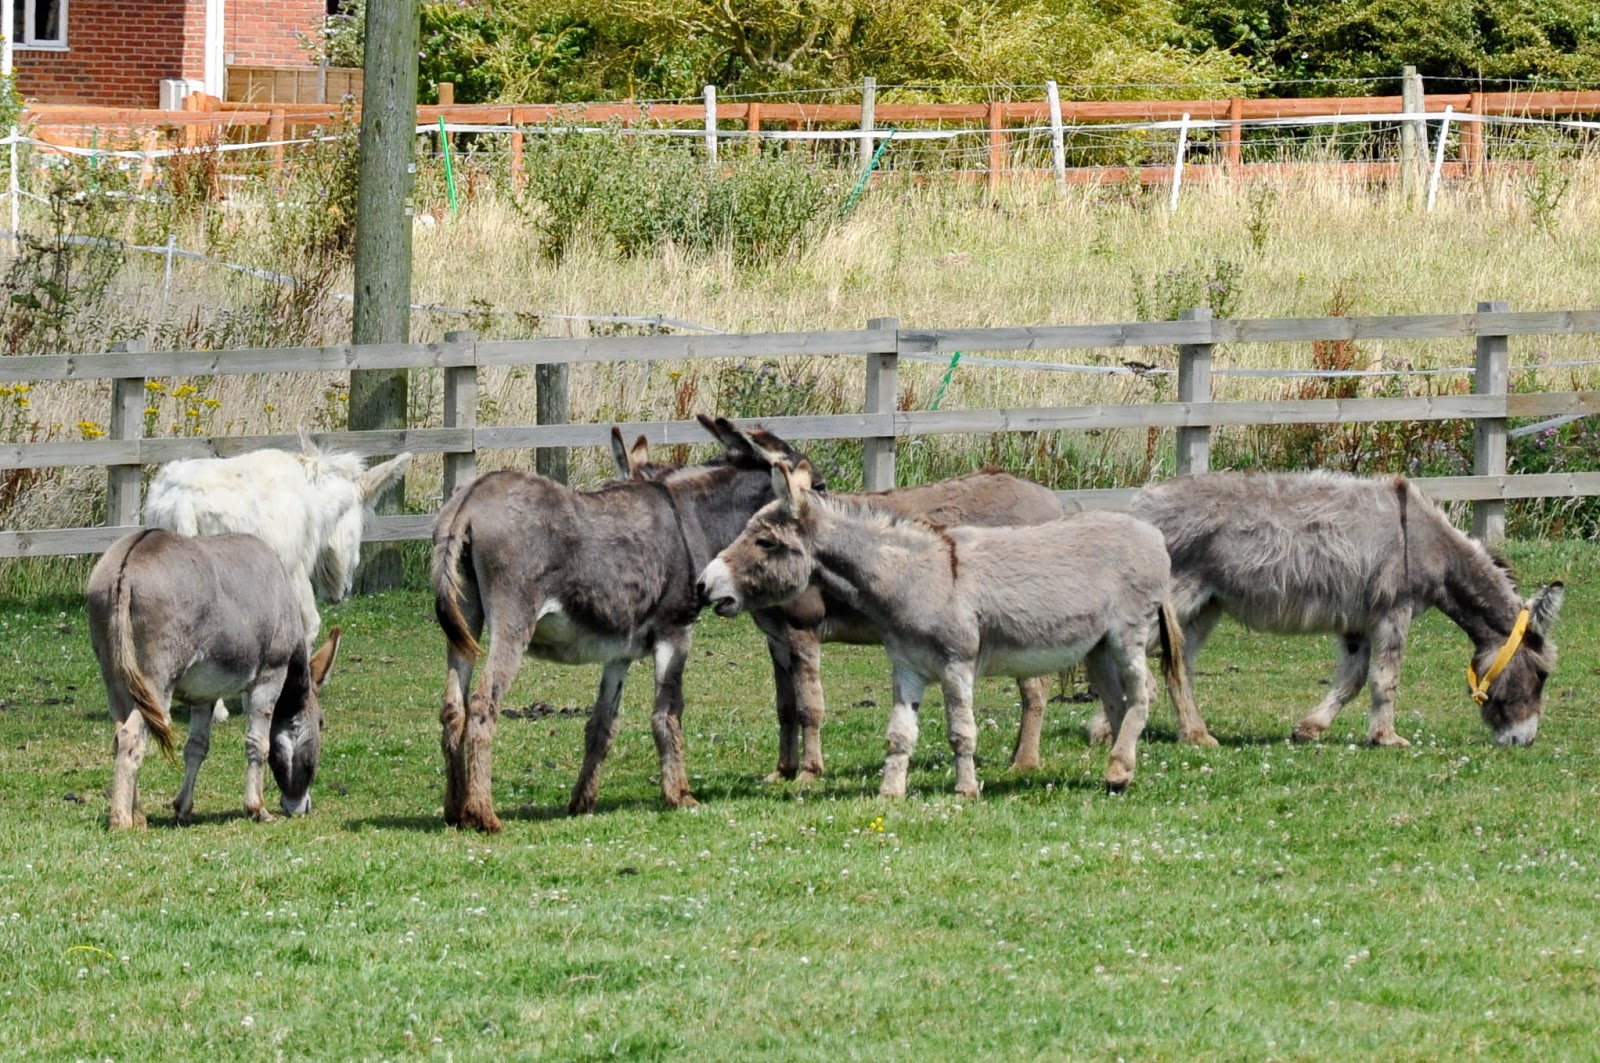 Donkeys chatting, The Donkey Sanctuary, Isle of Wight, UK